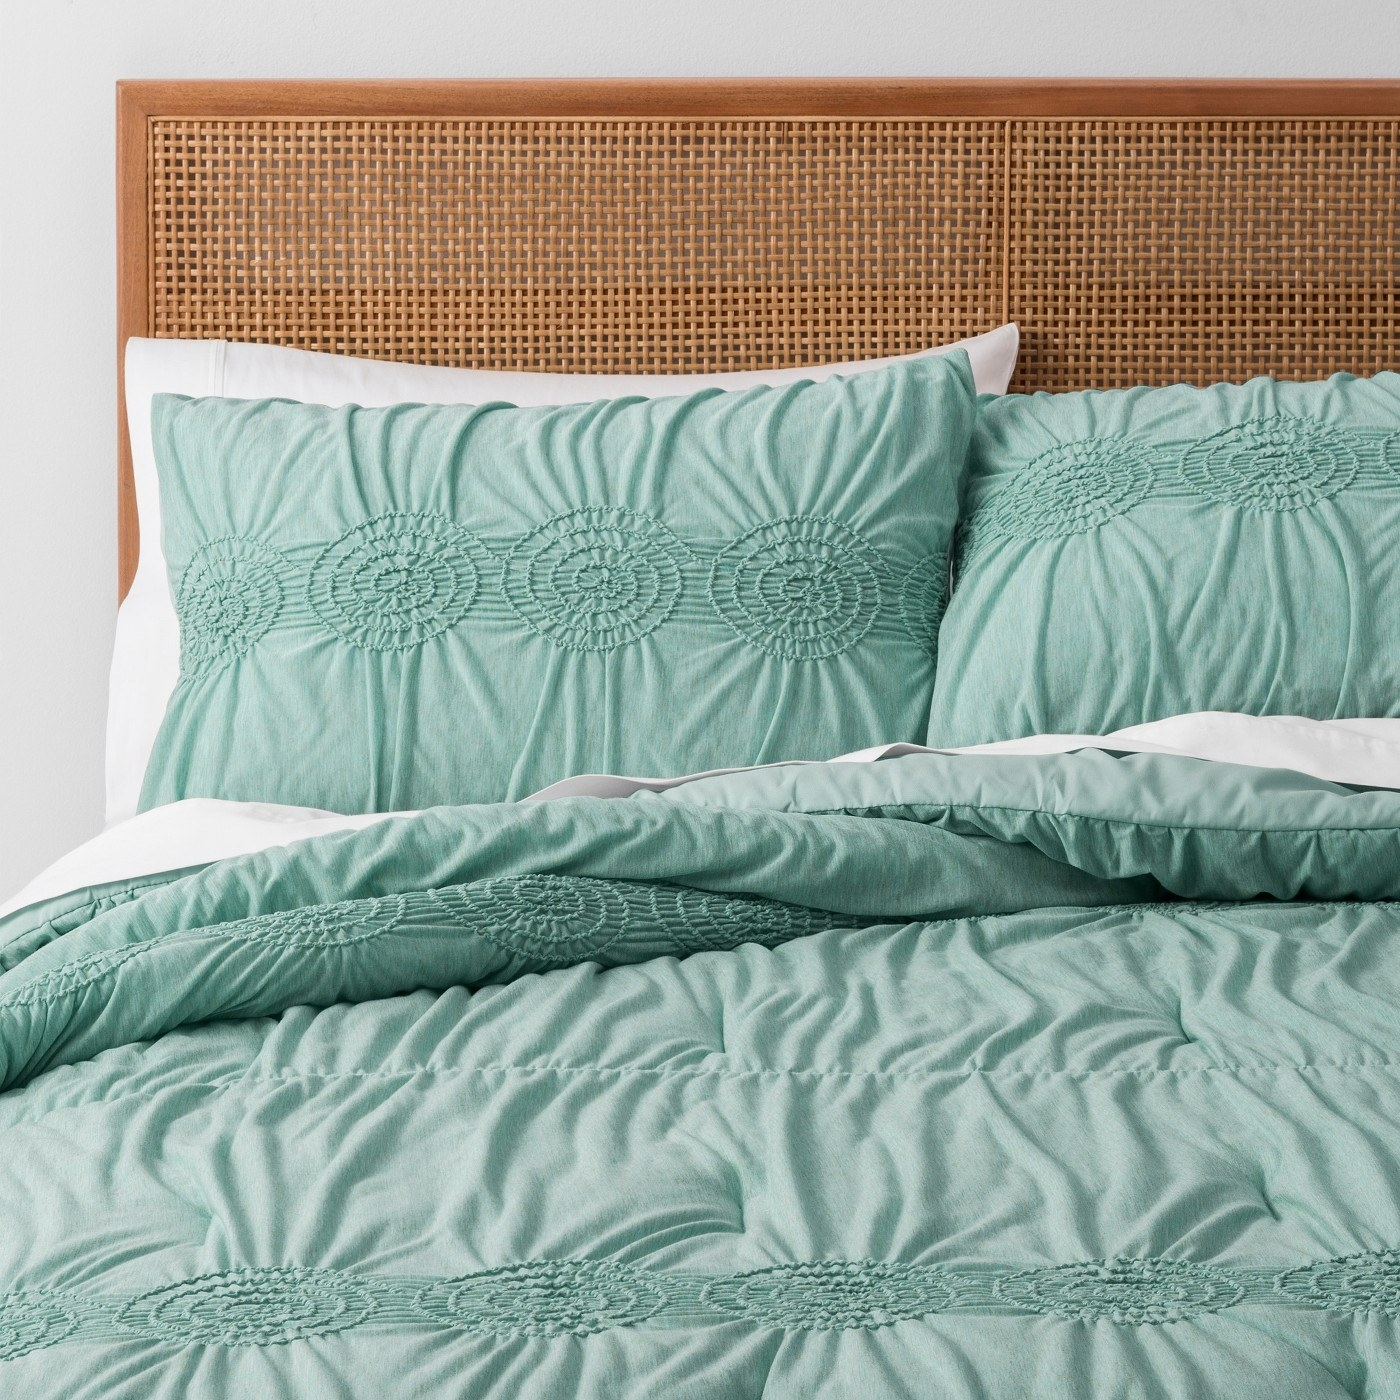 2a135b0bc Buy Mainstays Extra Long Extended Dorm Bed Skirt at Walmart .